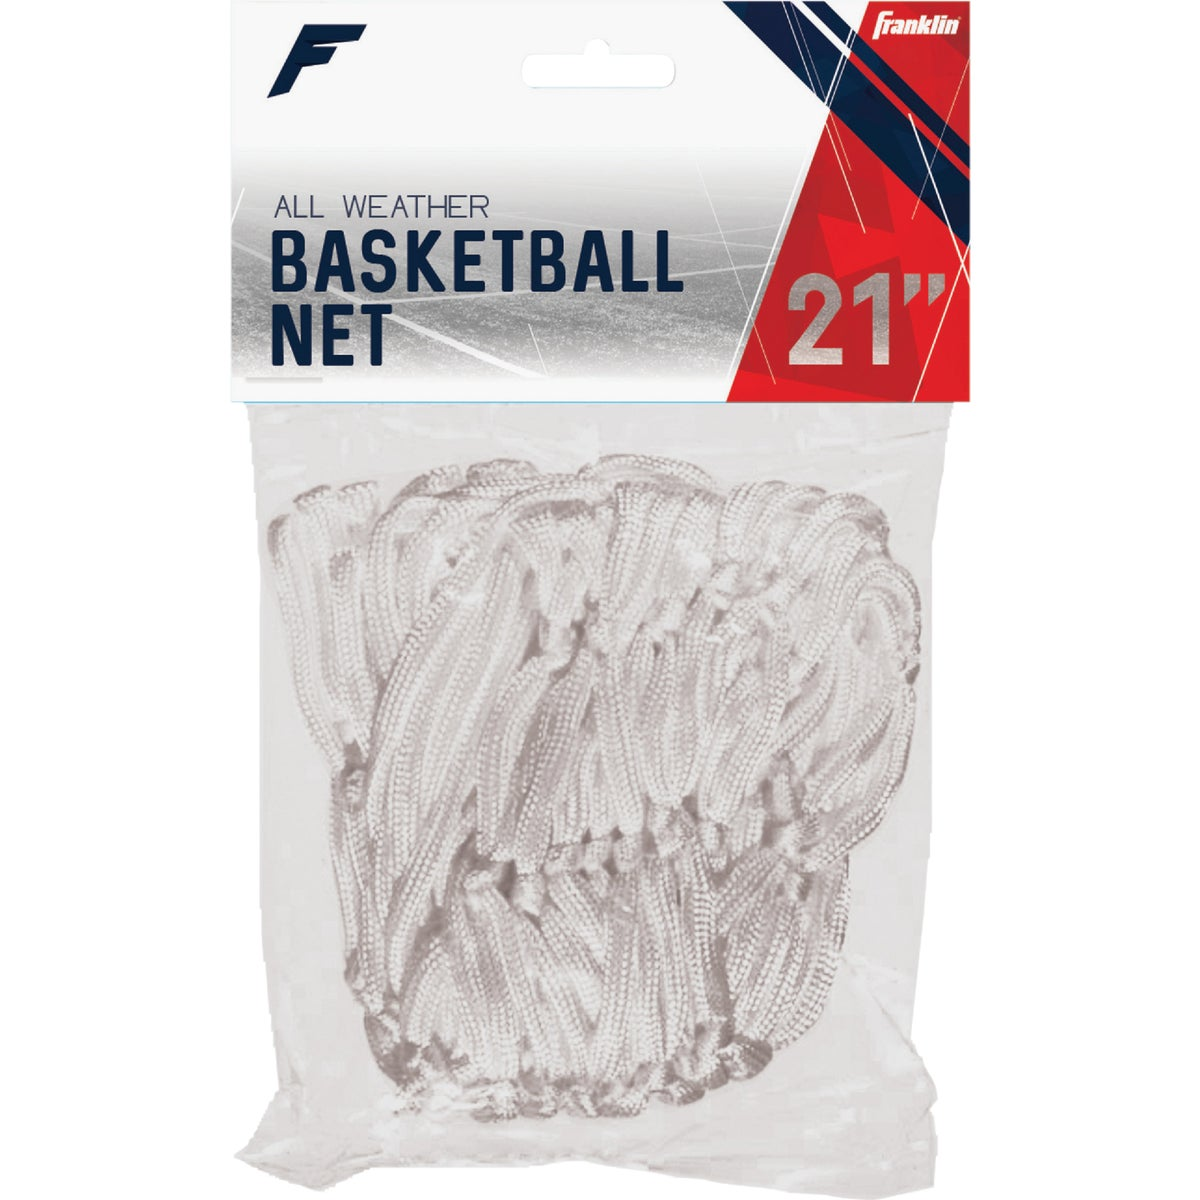 WHT BASKETBALL NET - 8284S by Huffy Sports